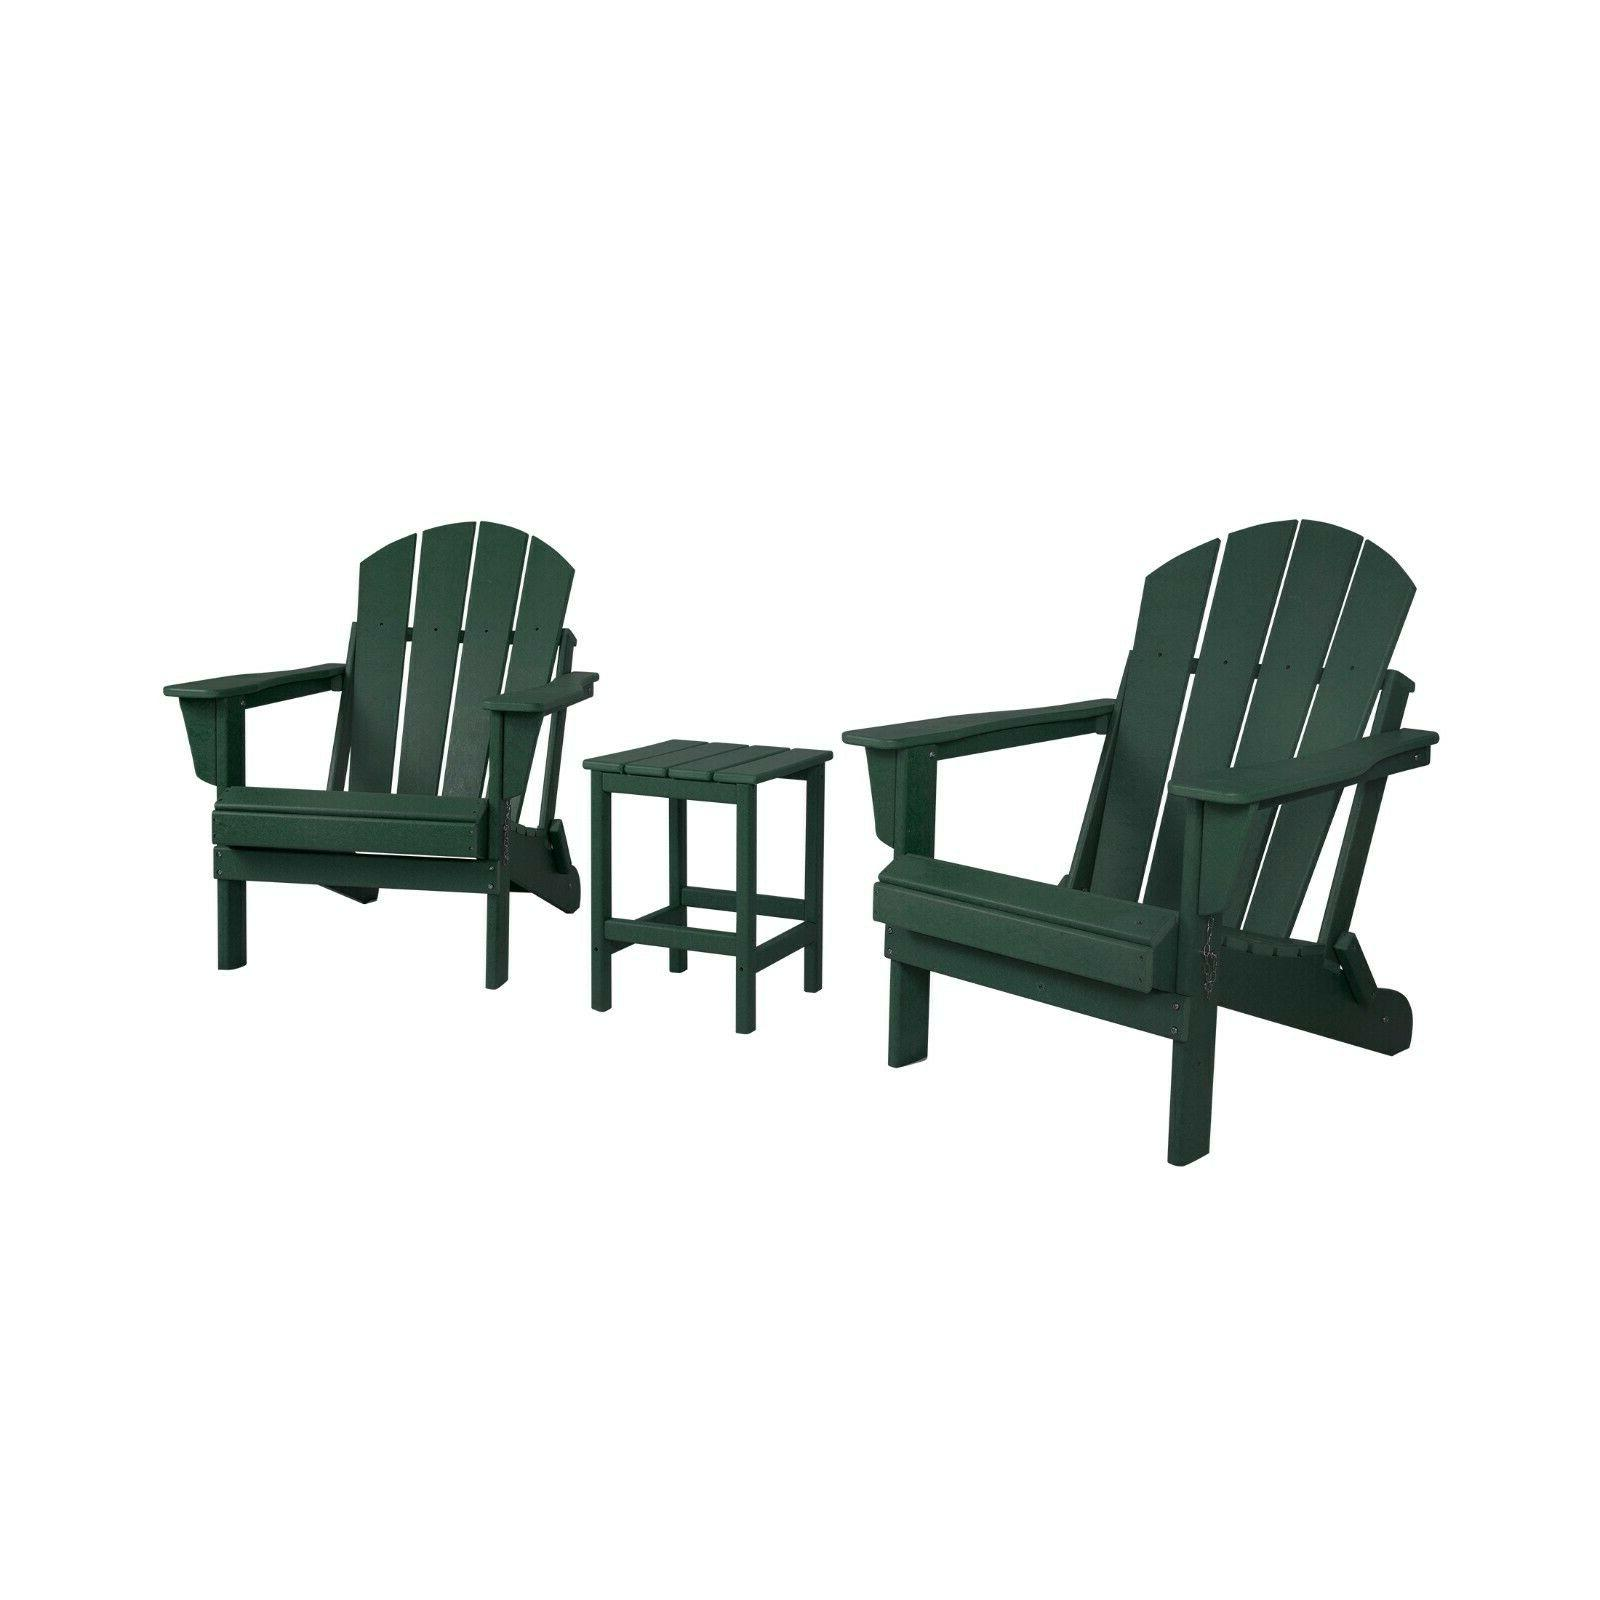 WestinTrends 3PC Outdoor Chairs w/